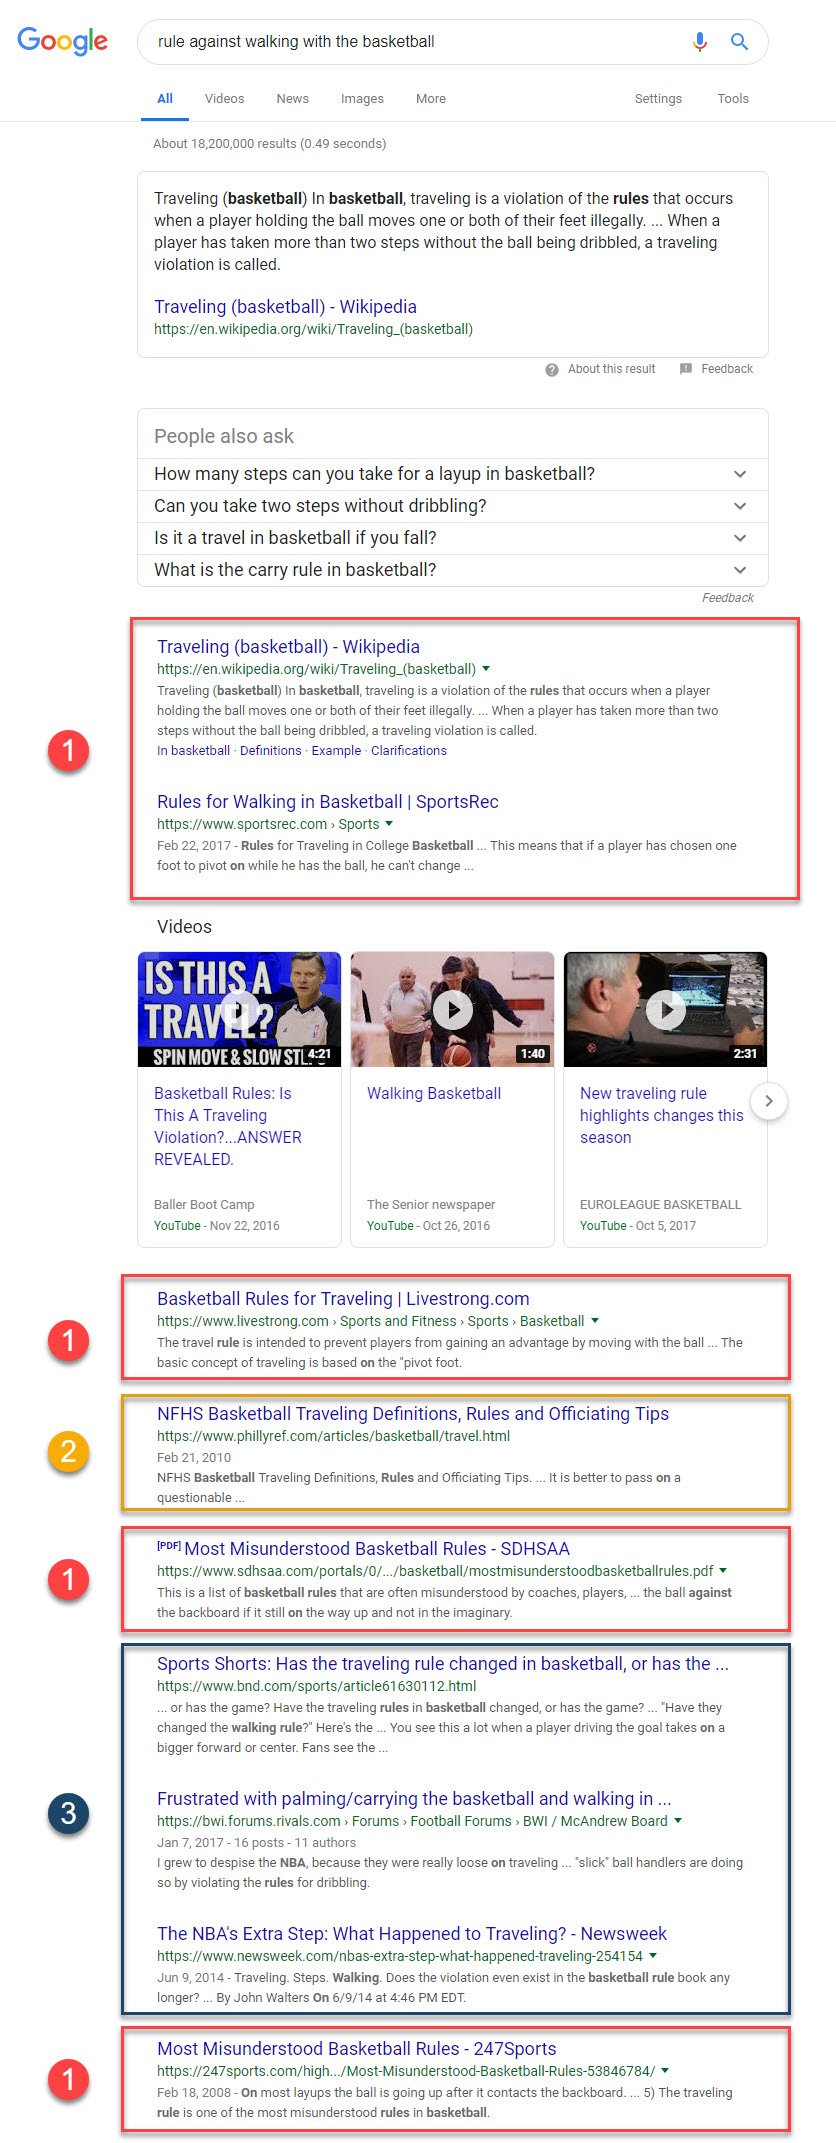 RankBrain SERP Example